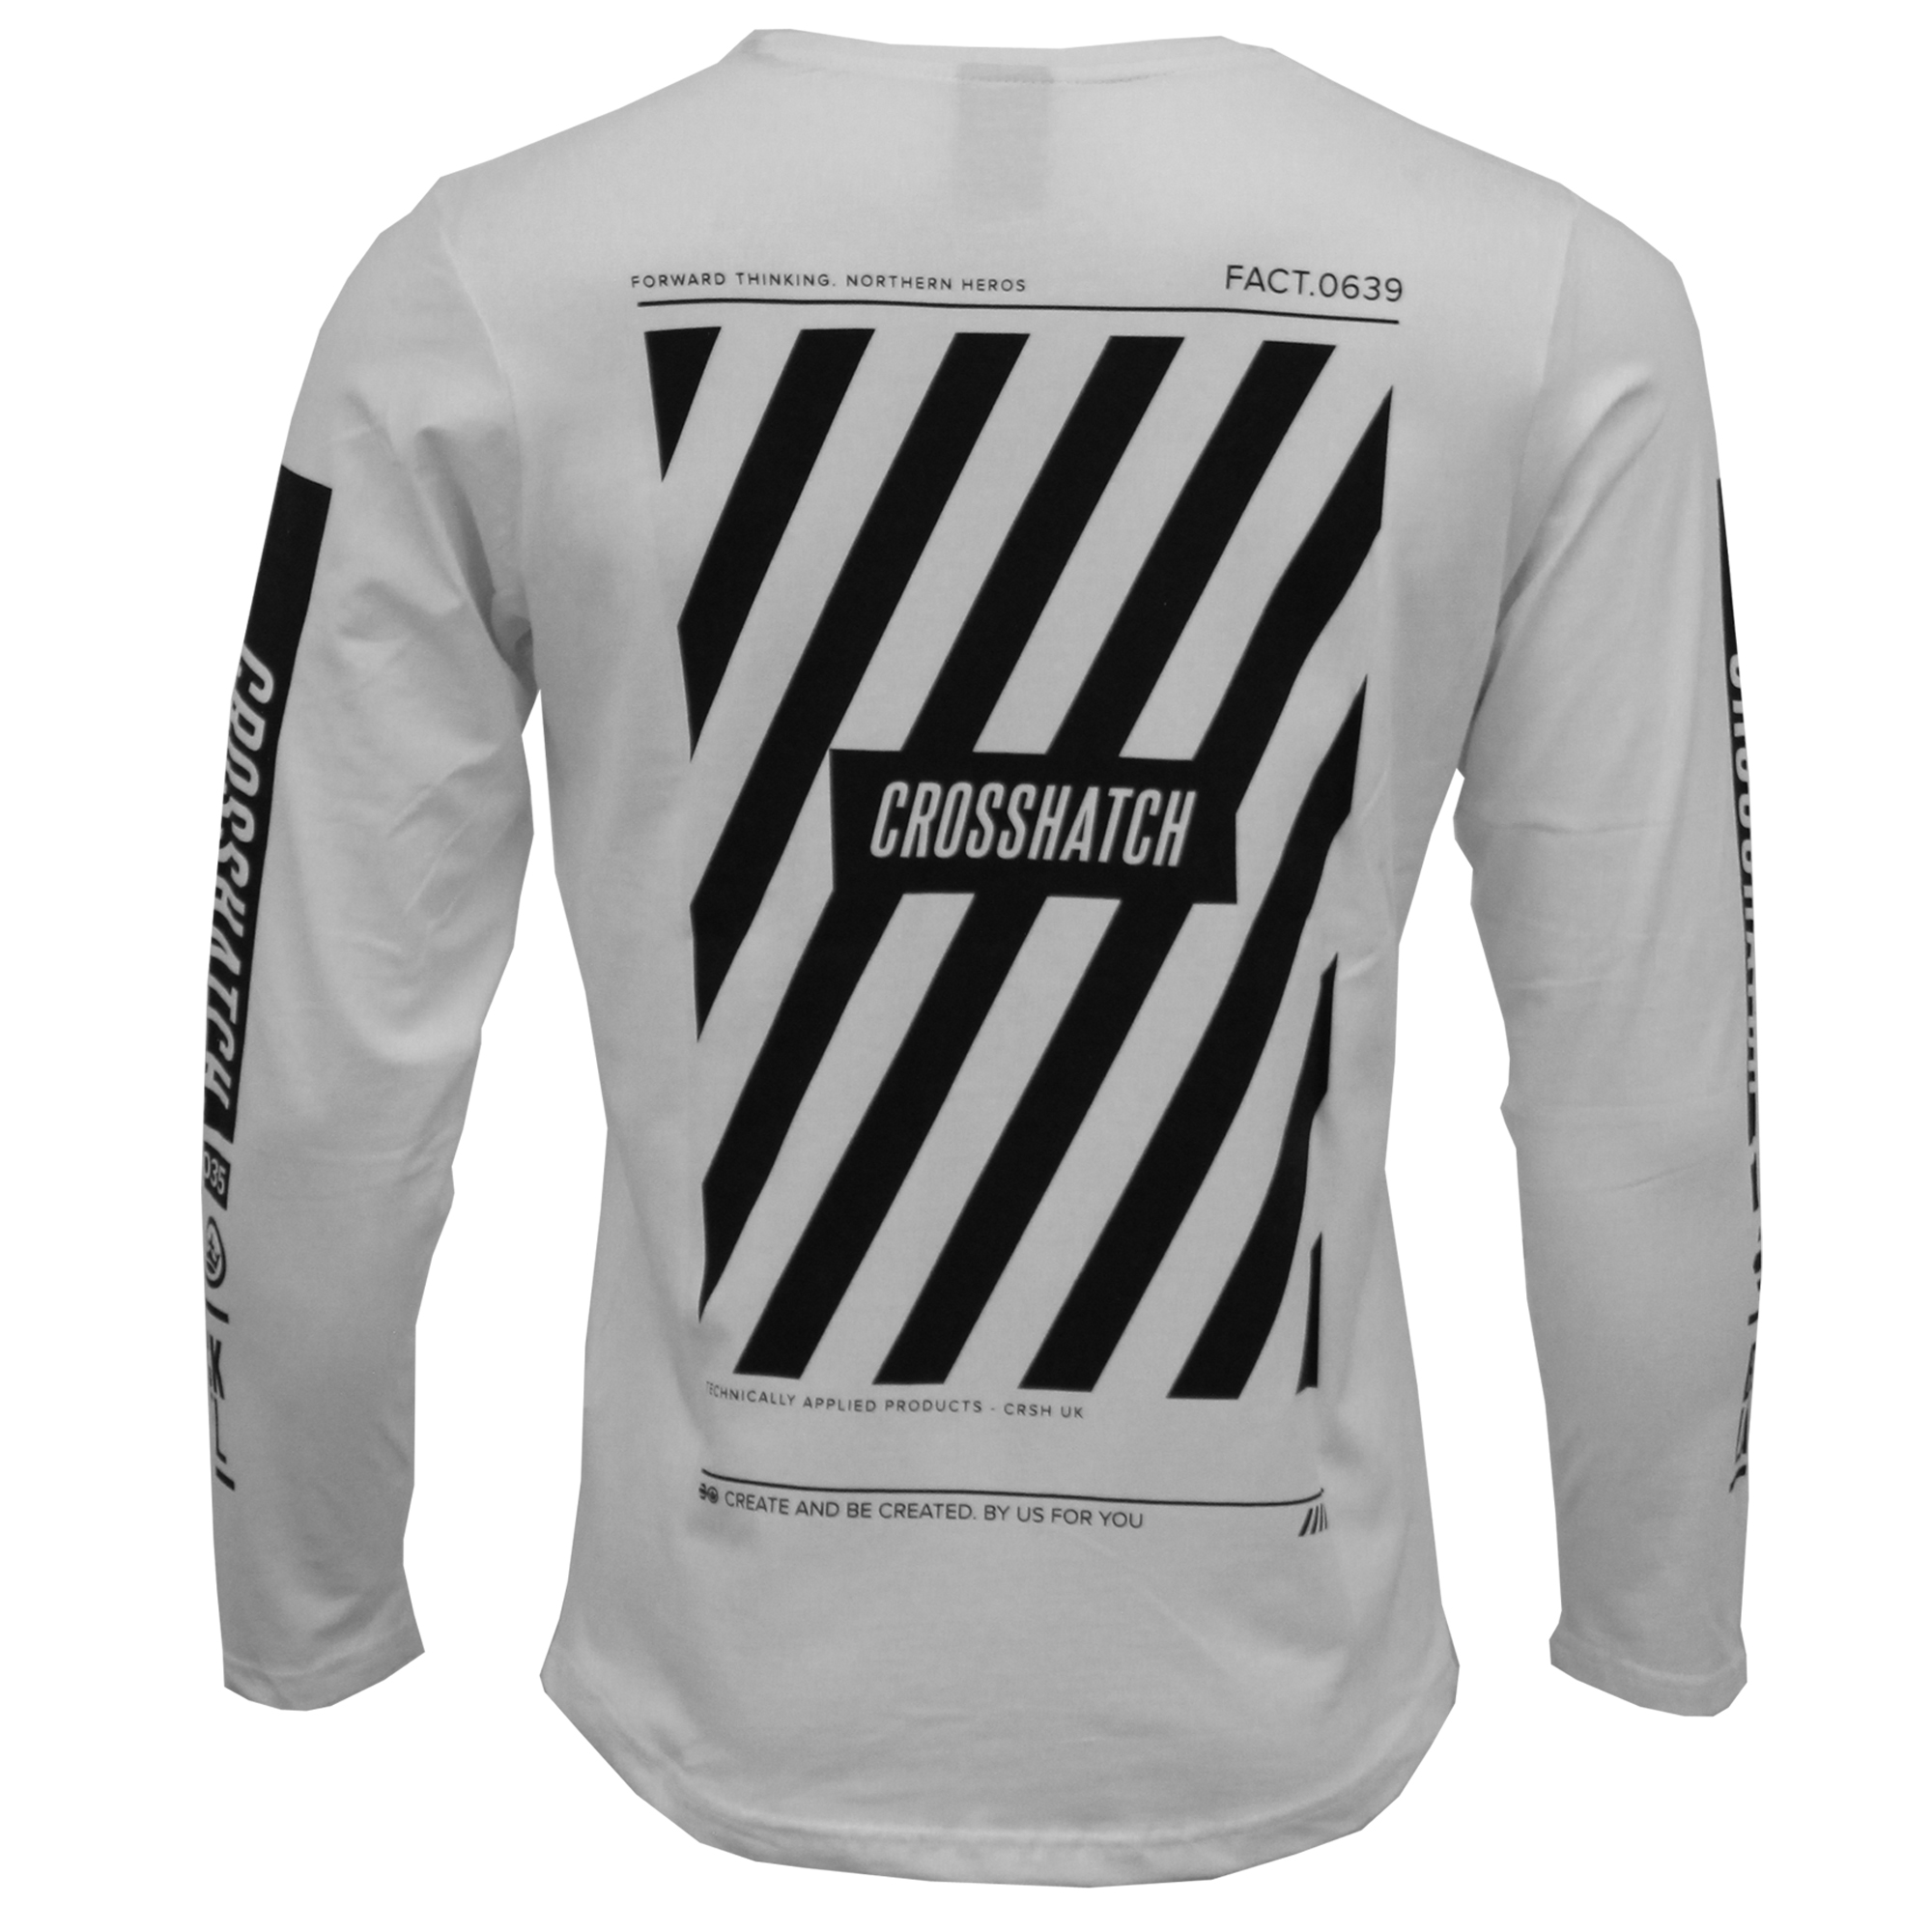 29c8dbebe726 Mens Long Sleeved Top Crosshatch Print Embroidery Crew Neck Fashion  Designer New